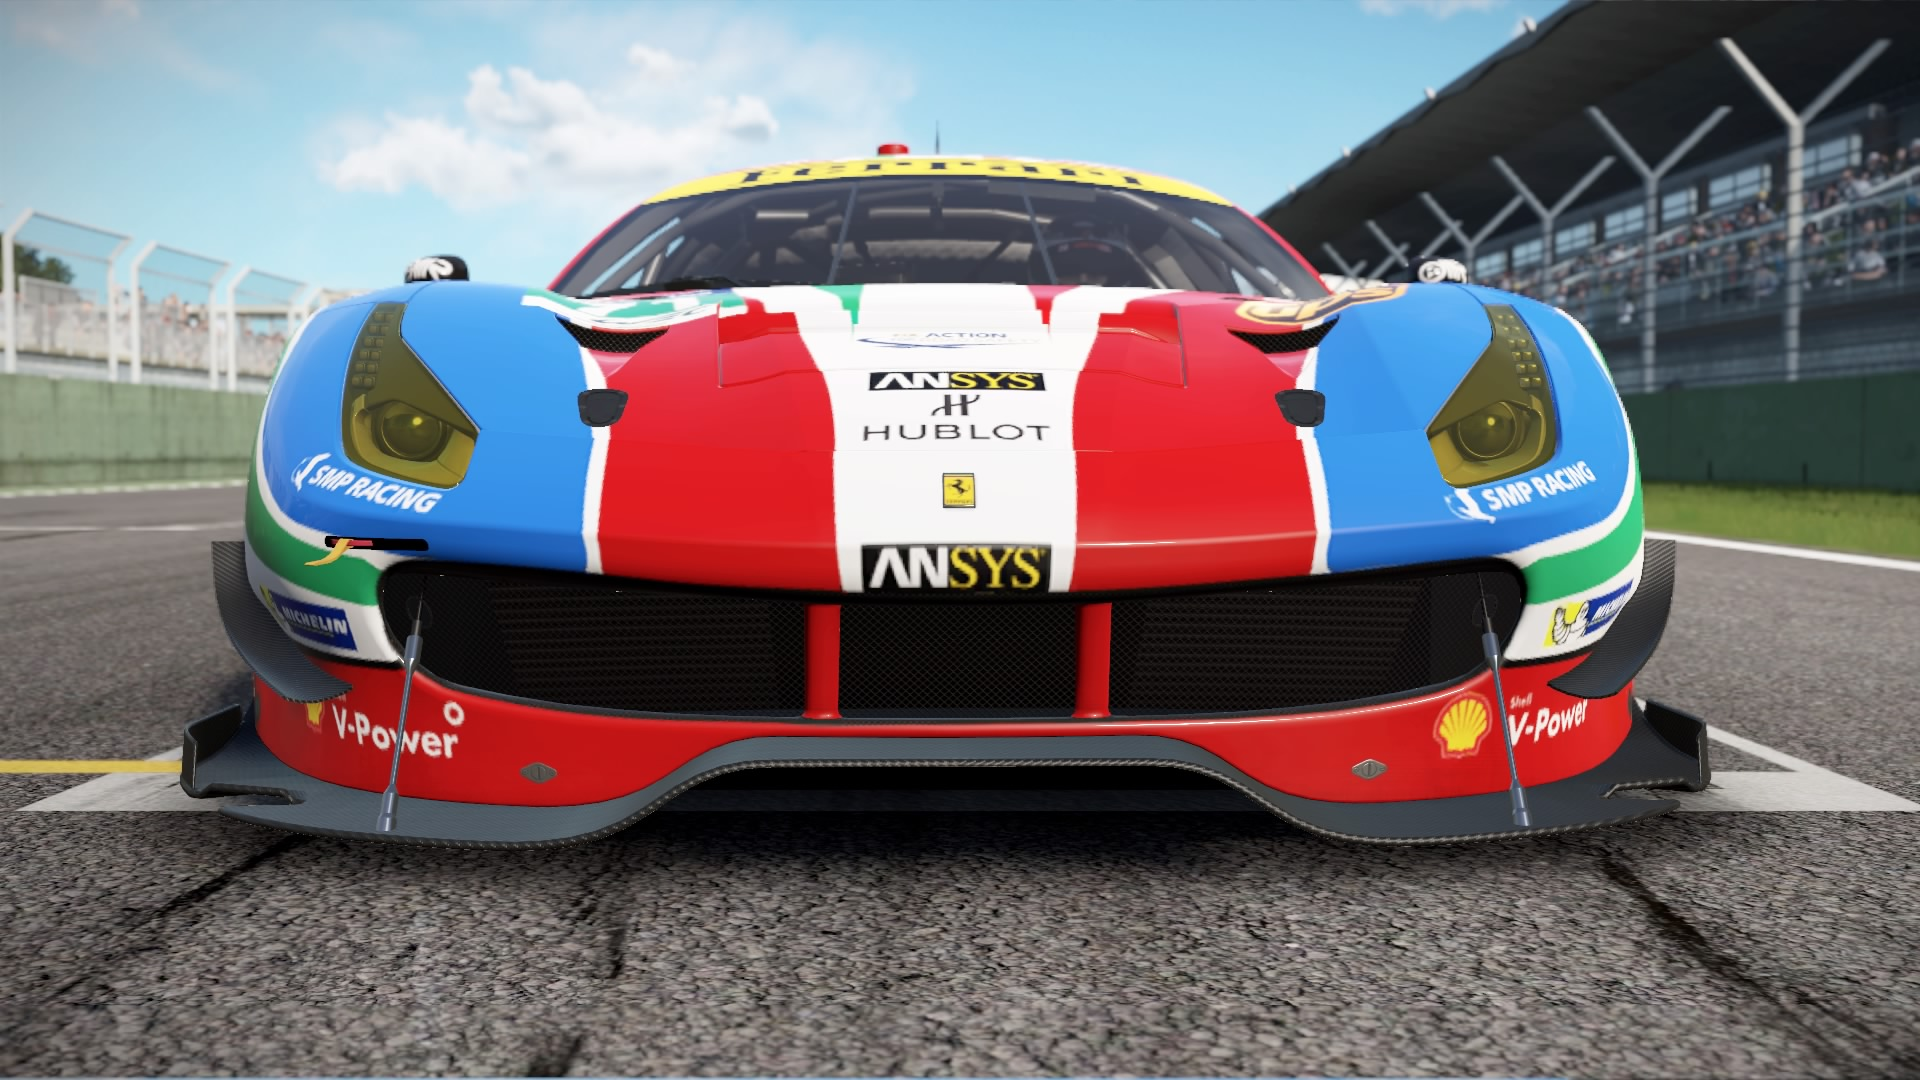 test project cars 2 ps4 le mag jeux high tech. Black Bedroom Furniture Sets. Home Design Ideas